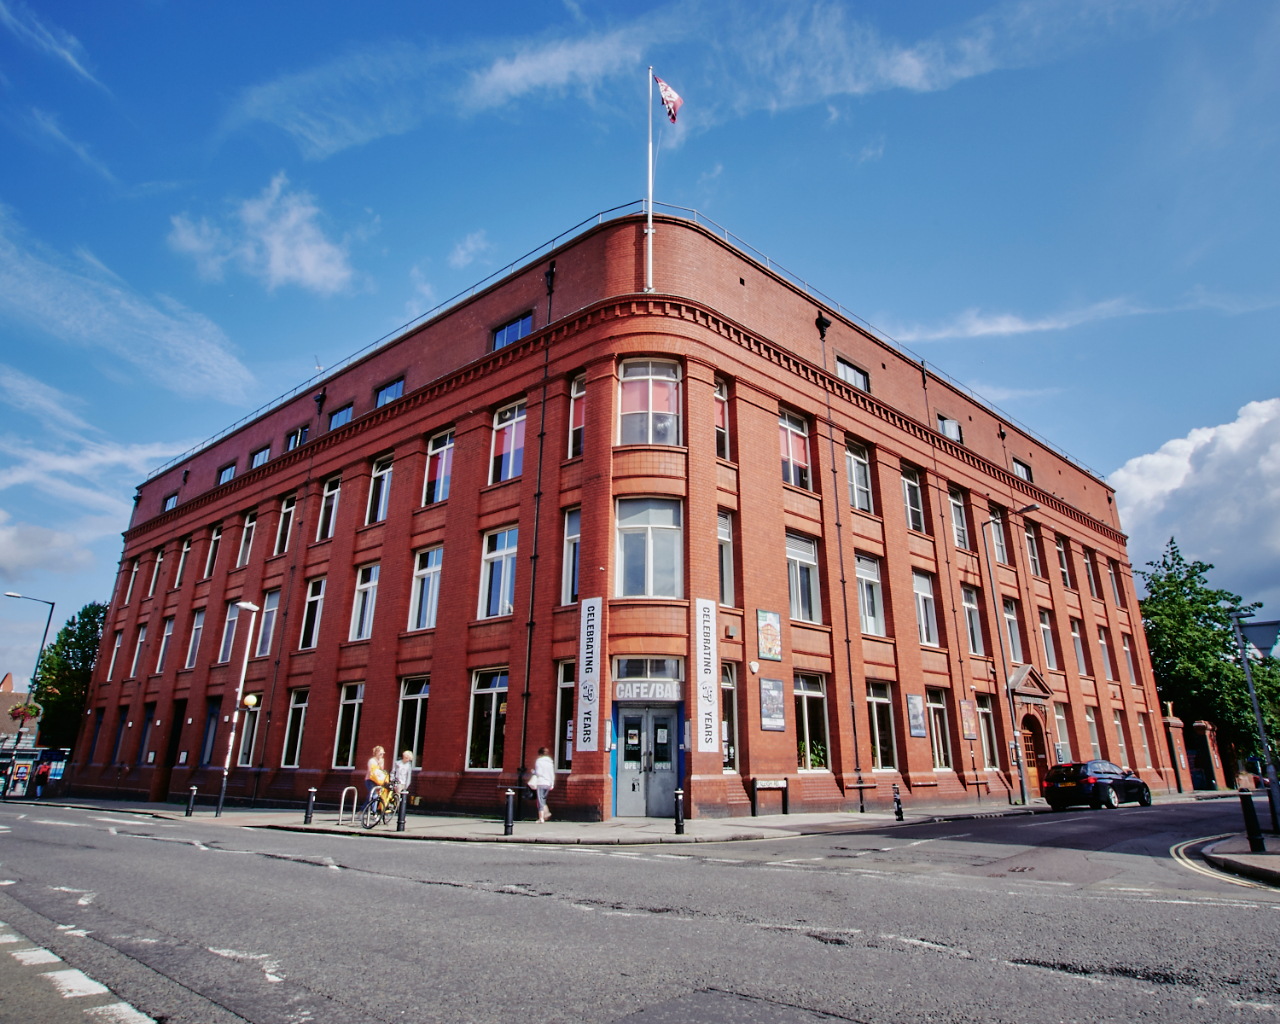 Tobacco Factory lands £150k emergency funding